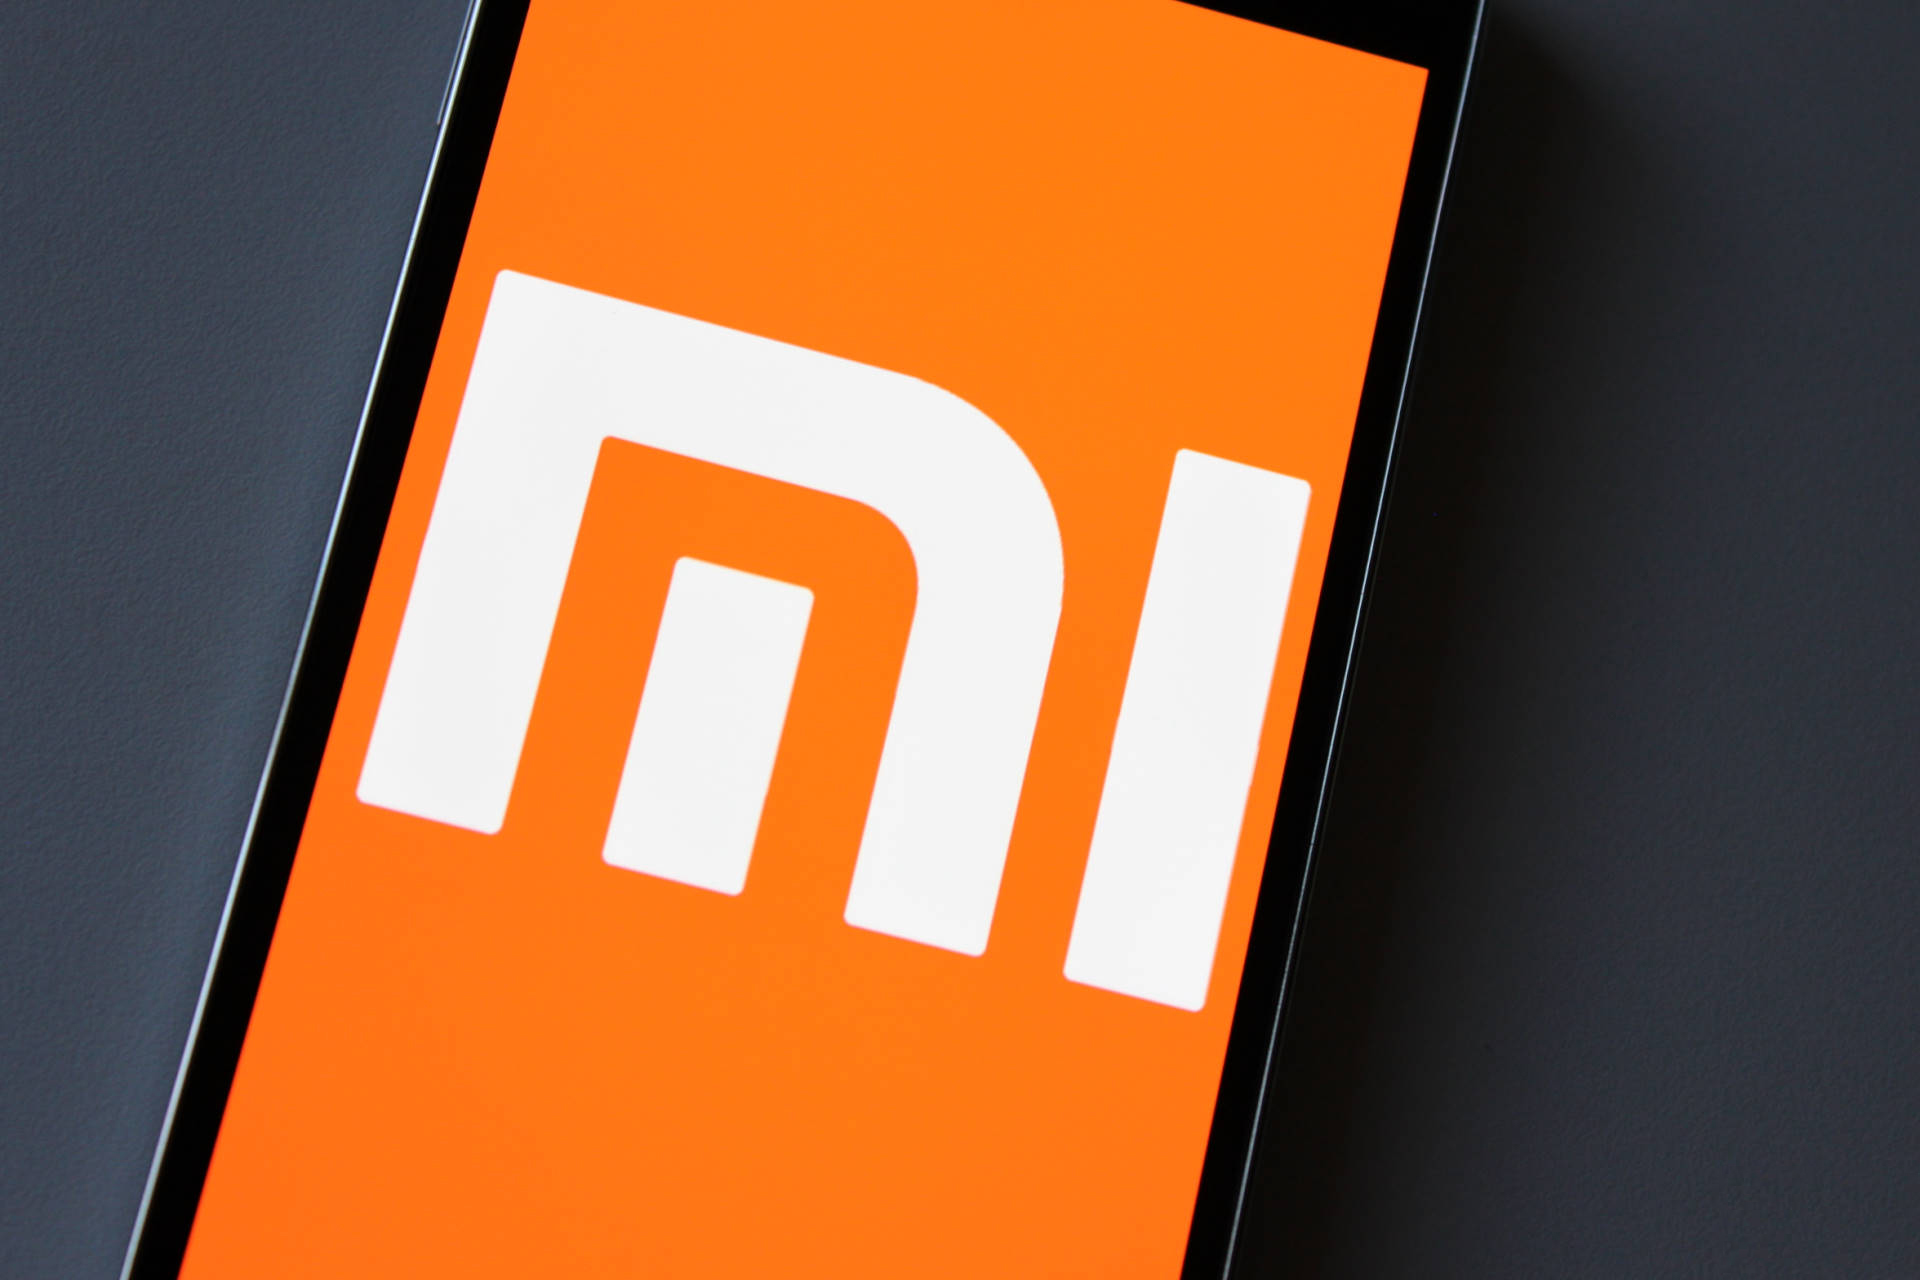 xiaomi now working on a small smartphone   the gazette review